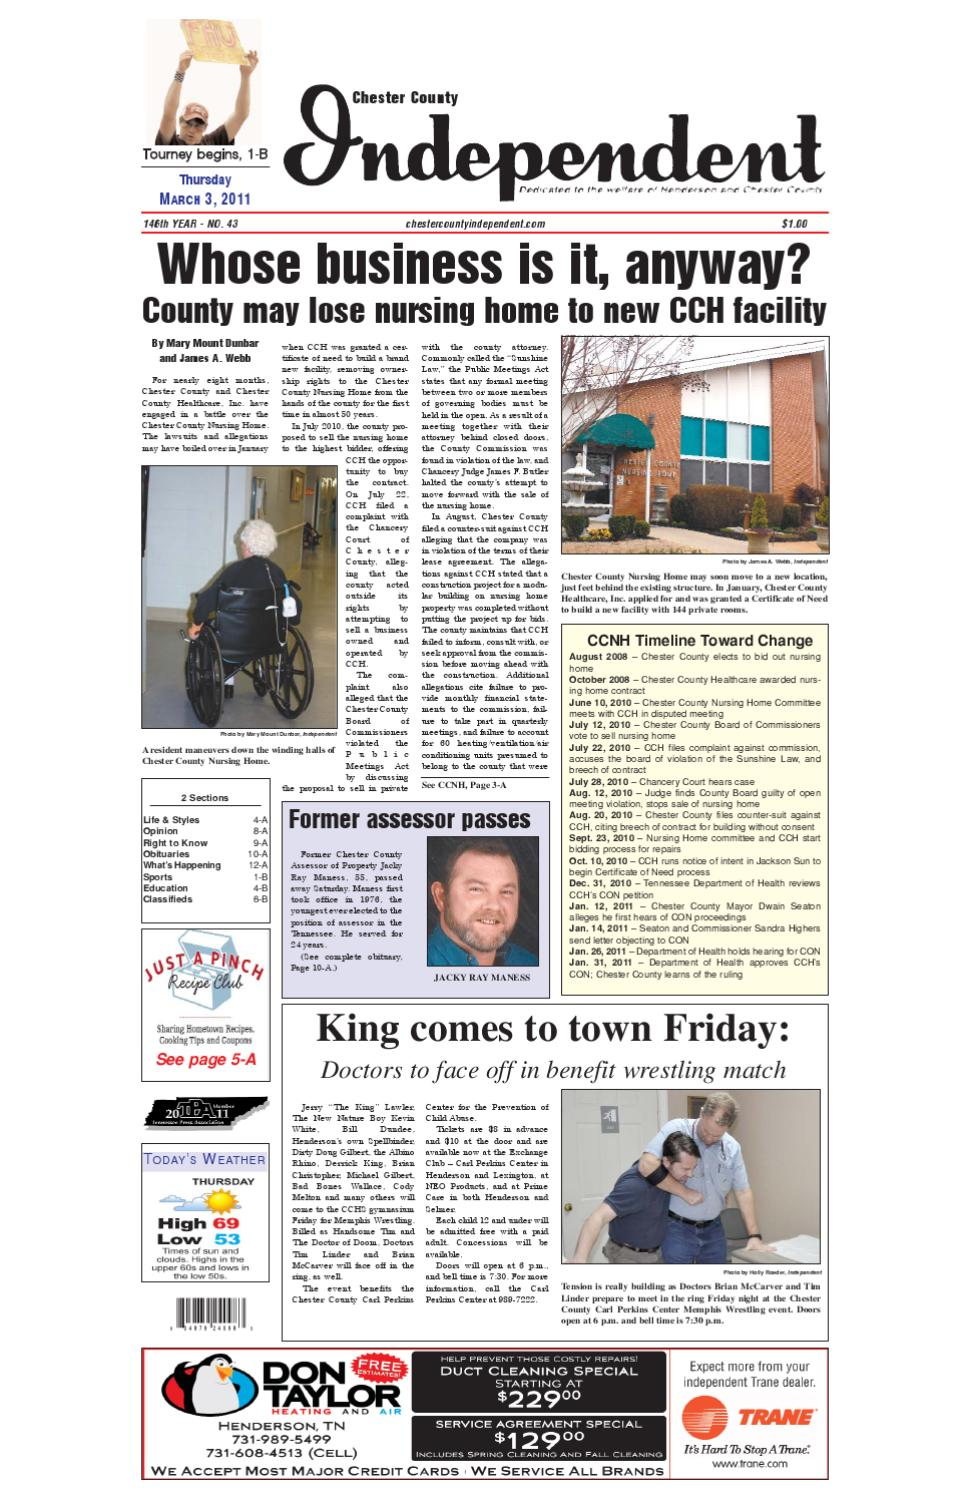 Tennessee chester county enville - Chester County Independent 03 03 11 By Chester County Independent Issuu